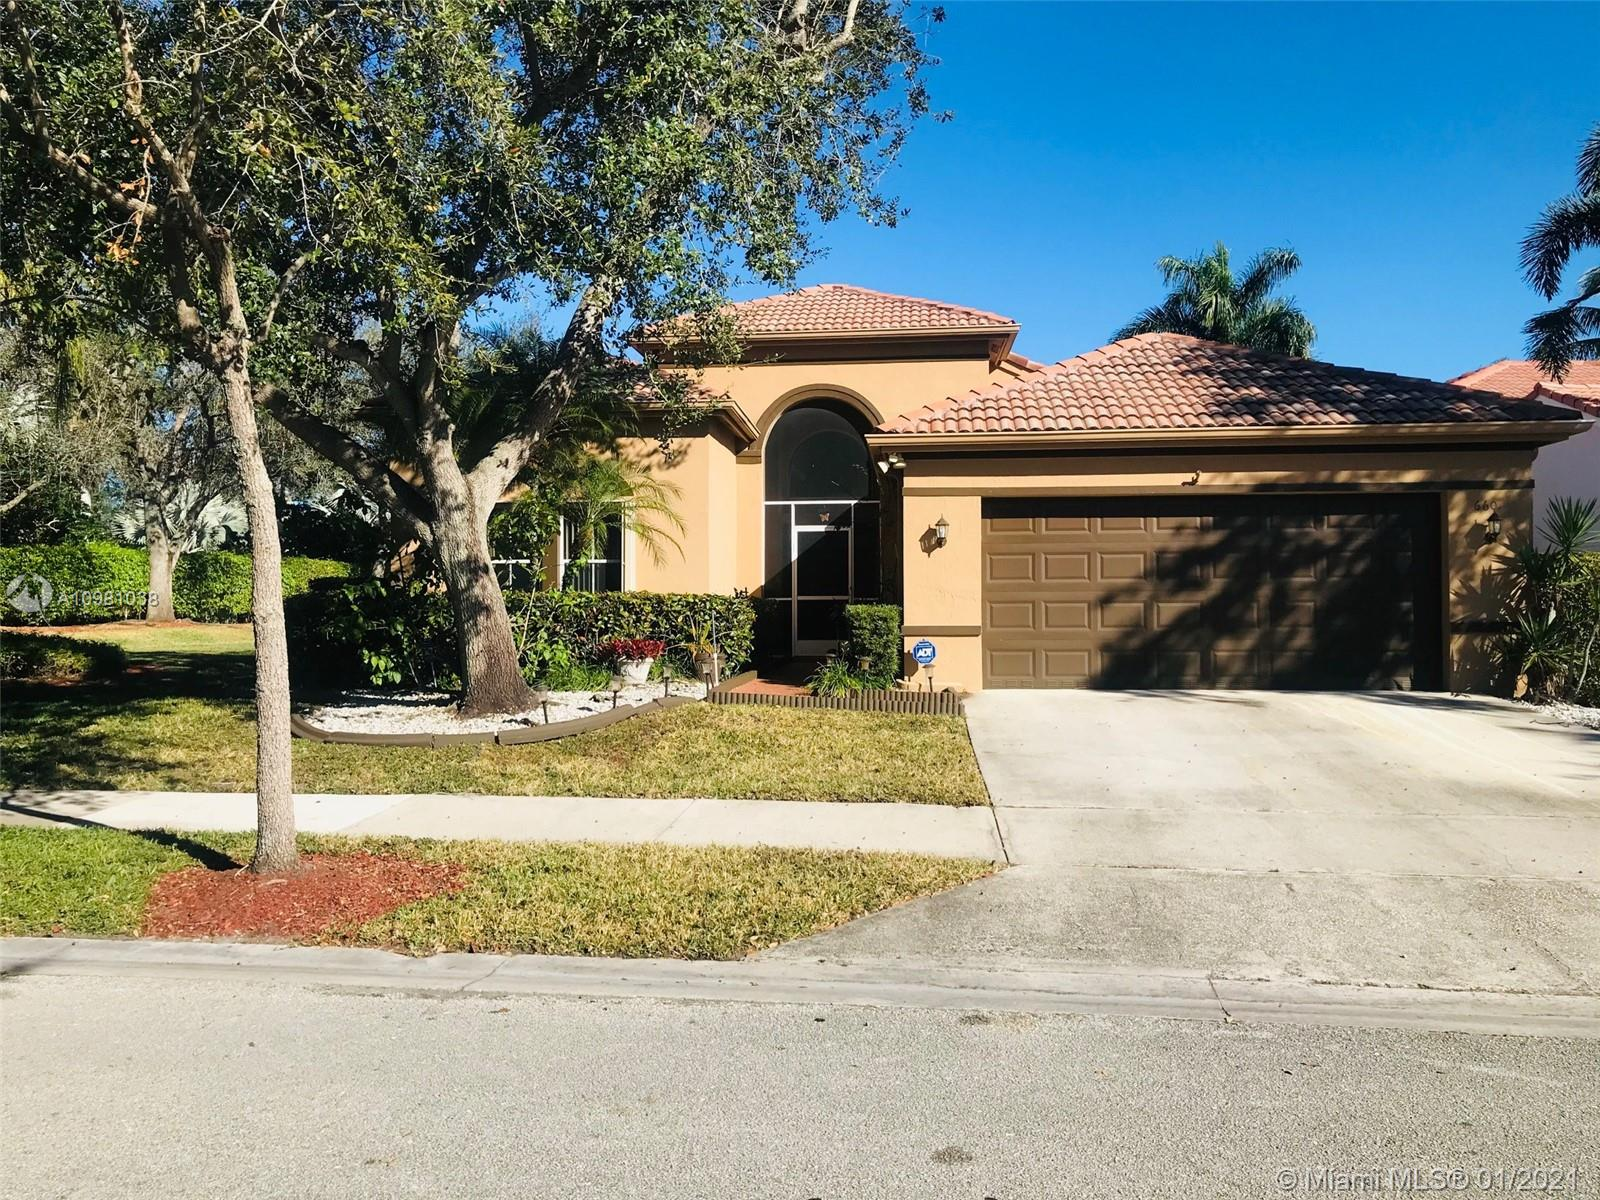 "Excellent Location!! Beautiful home located on a huge corner lot of 8243 sqft, desirable 24/7 guard gate Community of North Lakes in Weston, with all ""A"" graded schools. Amazing one story floor plan, 3 bedrooms 2 1/2 bathrooms. Foyer entry, impact front entry doors. Formal Dining and Living room with high ceiling. Nice and cozy kitchen with overlooking pool area, upgraded quartz countertop, spacious family room. Spacious master bedroom with overlooking pool area, bathroom with double sinks, shower and bathtub, his and hers closets. Neutral ceramic tile in social areas and baths, laminate in family room and carpet in bedrooms. Accordian shutters and hurricane garage door. Covered patio and screened heated pool is ready for your enjoyment and entertainment."